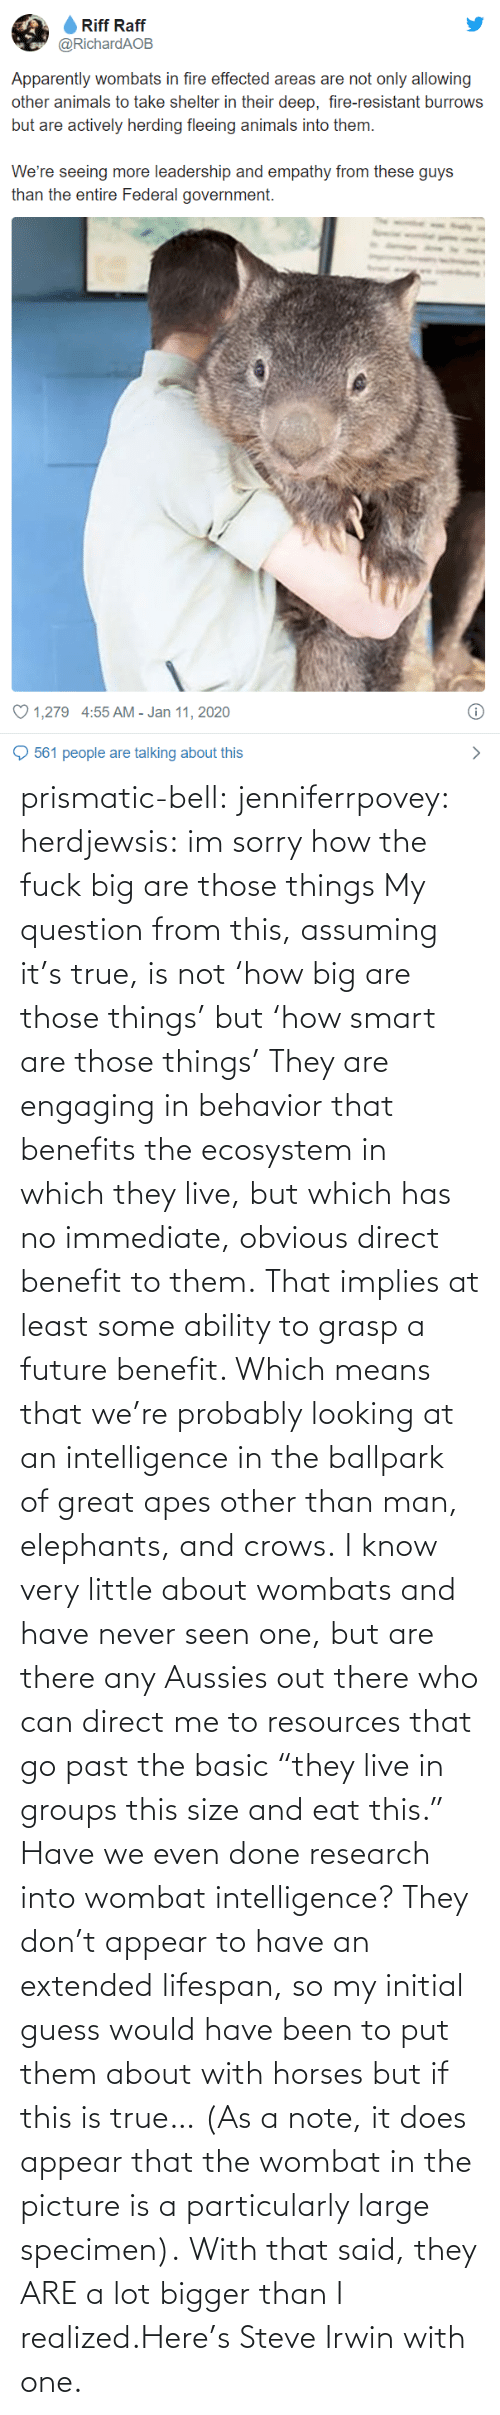 "Research: prismatic-bell:  jenniferrpovey: herdjewsis: im sorry how the fuck big are those things My question from this, assuming it's true, is not 'how big are those things' but 'how smart are those things' They are engaging in behavior that benefits the ecosystem in which they live, but which has no immediate, obvious direct benefit to them. That implies at least some ability to grasp a future benefit. Which means that we're probably looking at an intelligence in the ballpark of great apes other than man, elephants, and crows. I know very little about wombats and have never seen one, but are there any Aussies out there who can direct me to resources that go past the basic ""they live in groups this size and eat this."" Have we even done research into wombat intelligence? They don't appear to have an extended lifespan, so my initial guess would have been to put them about with horses but if this is true… (As a note, it does appear that the wombat in the picture is a particularly large specimen).  With that said, they ARE a lot bigger than I realized.Here's Steve Irwin with one."